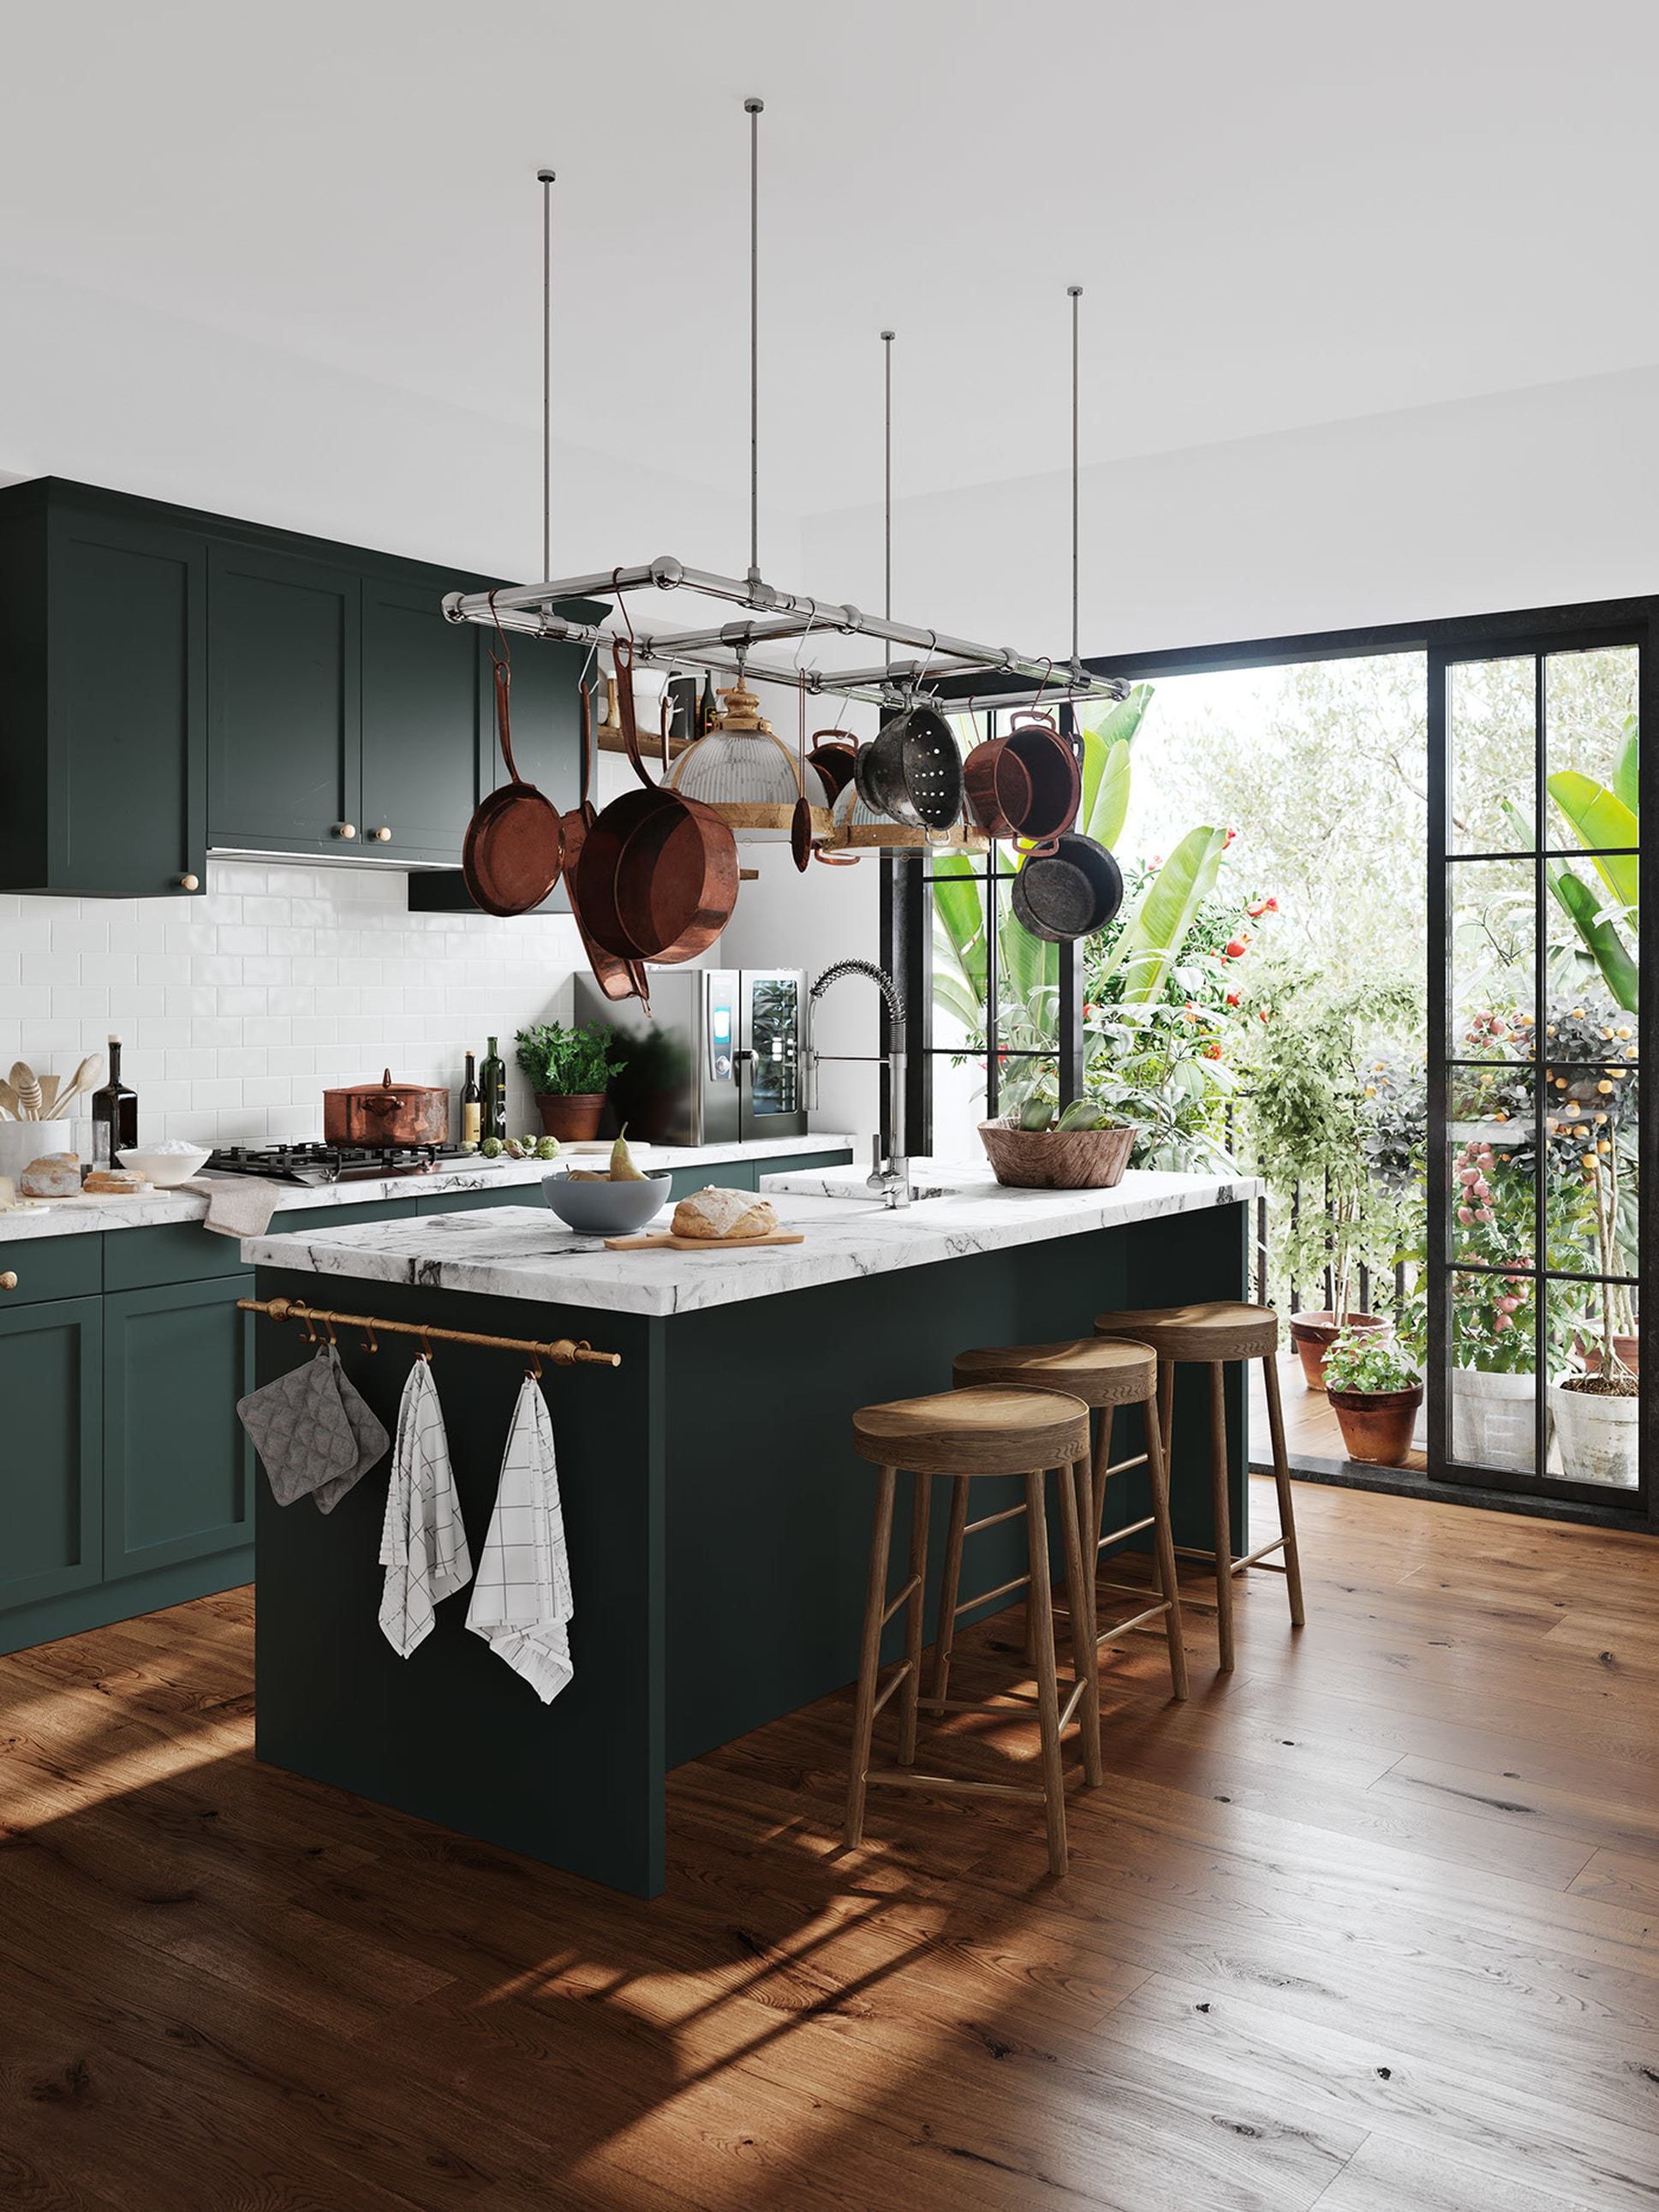 kitchen renovation can add value and a sense of permanence to your home